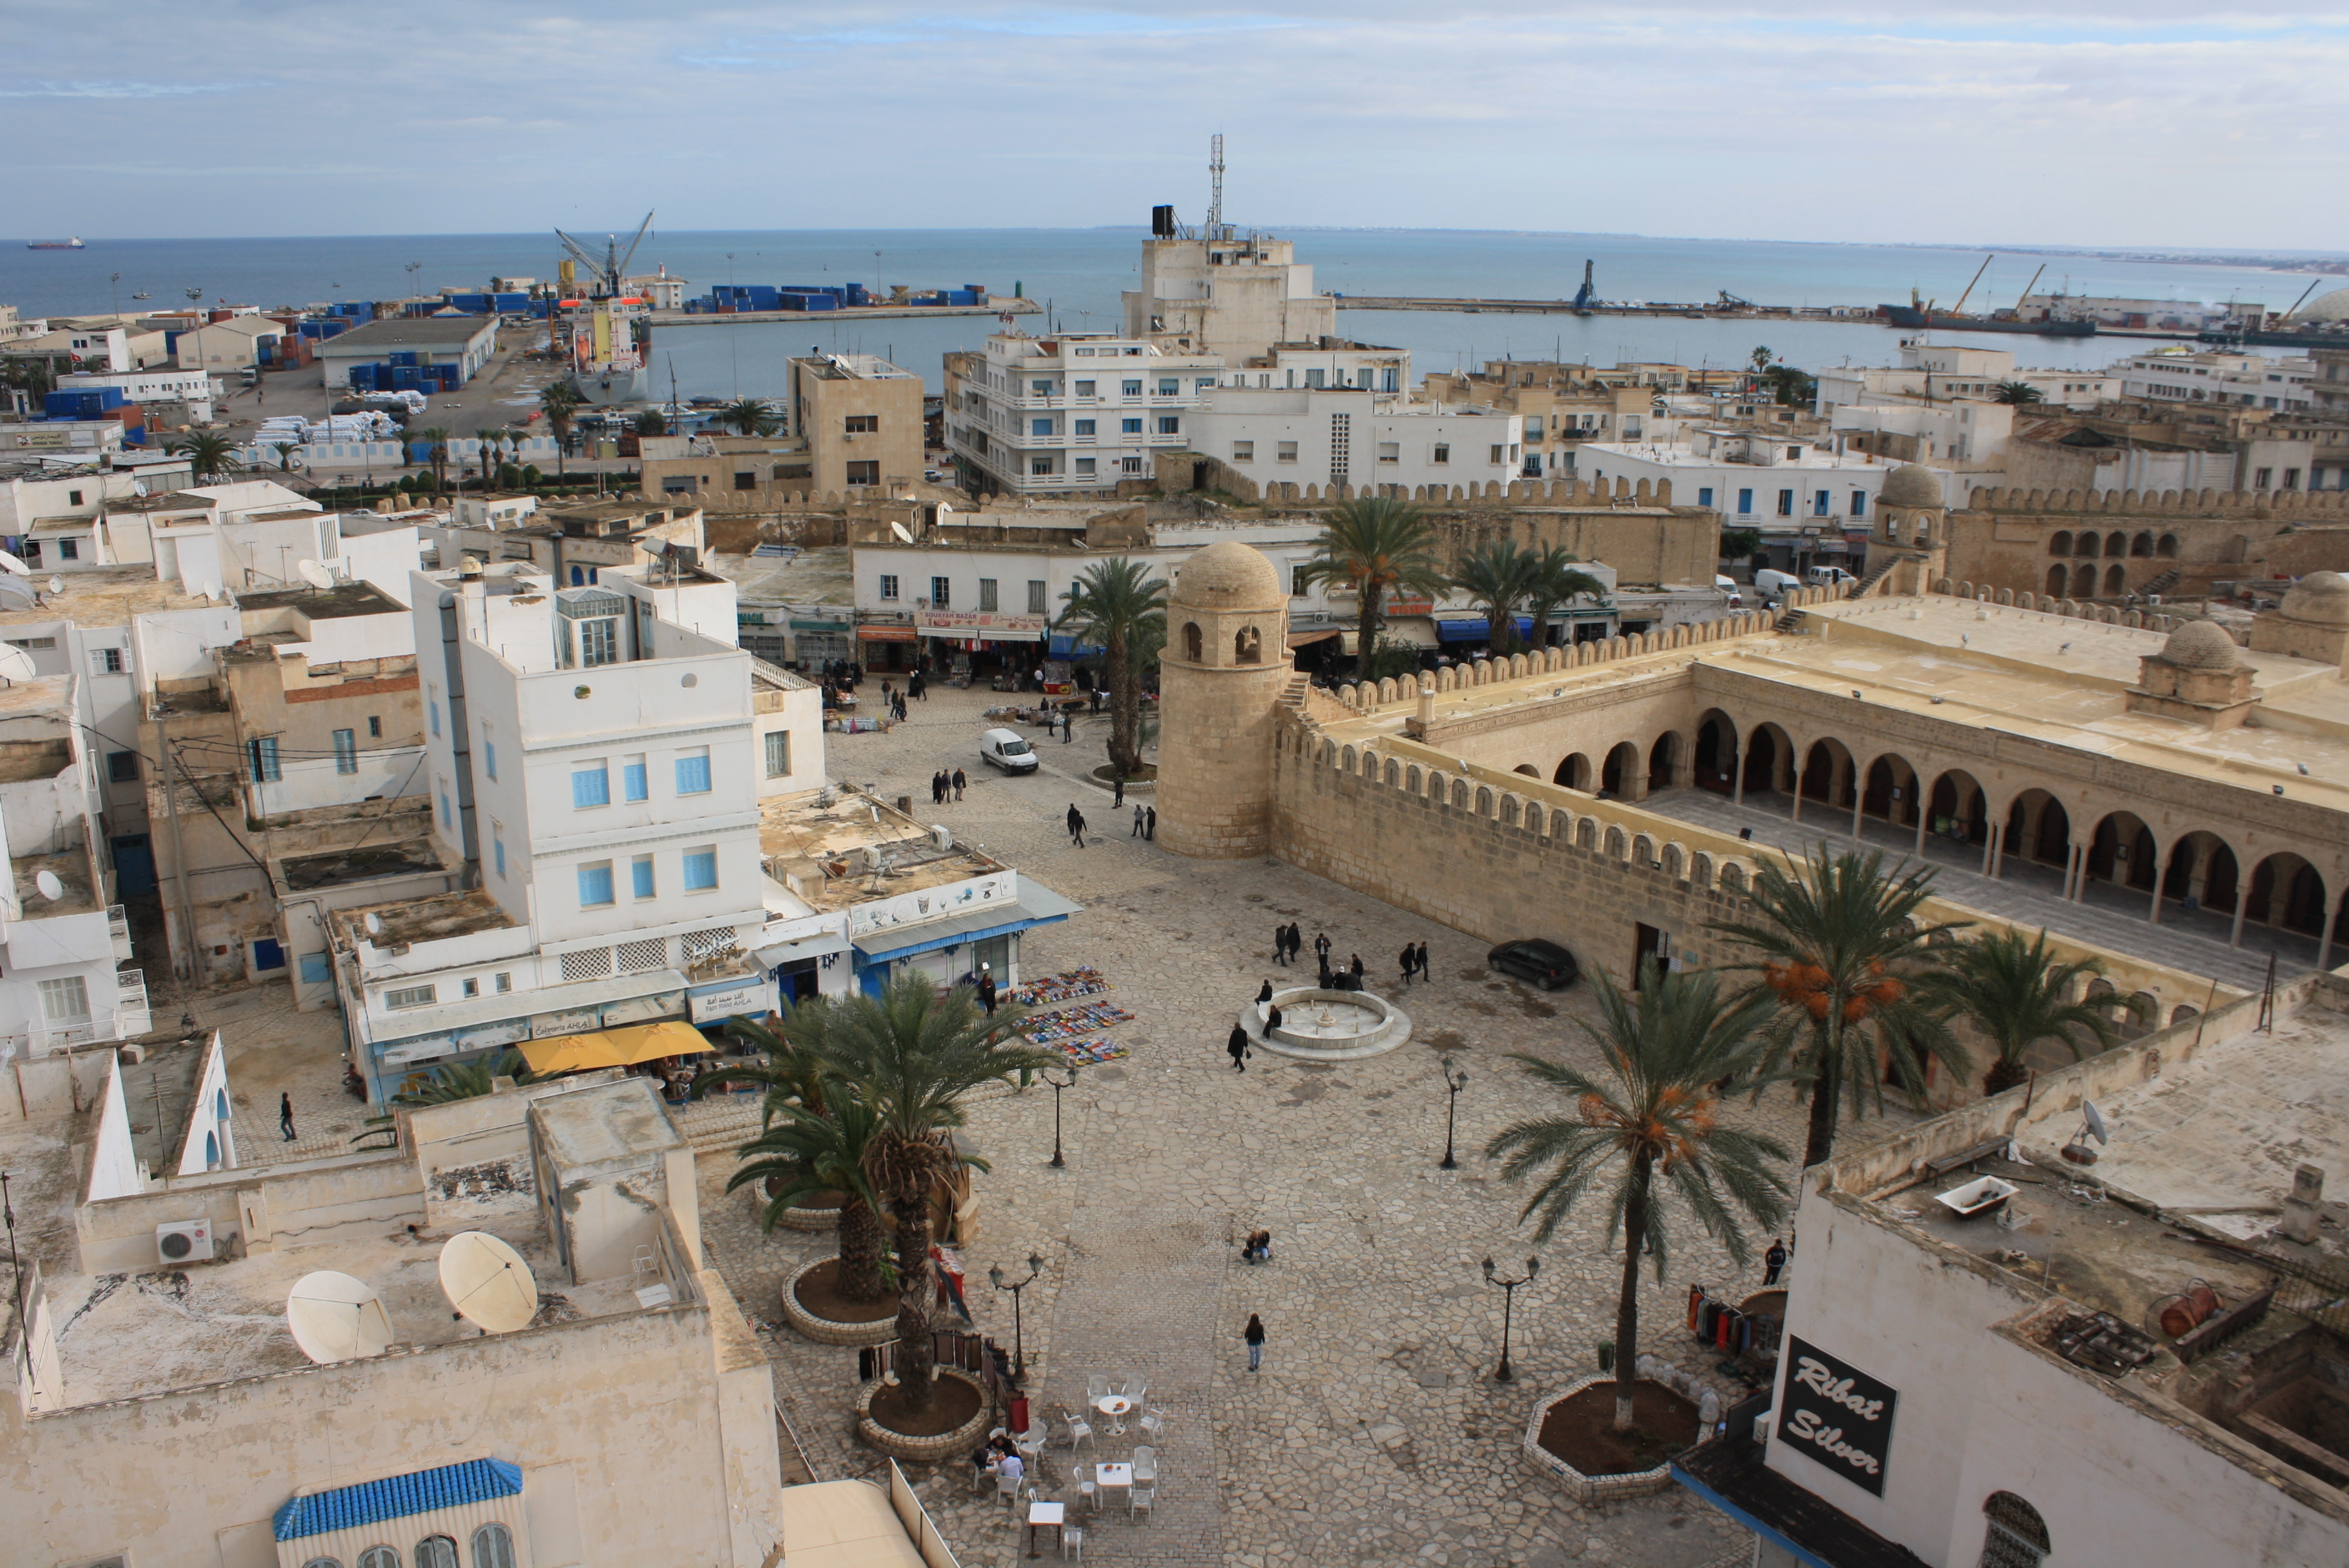 Postcard from Tunisia